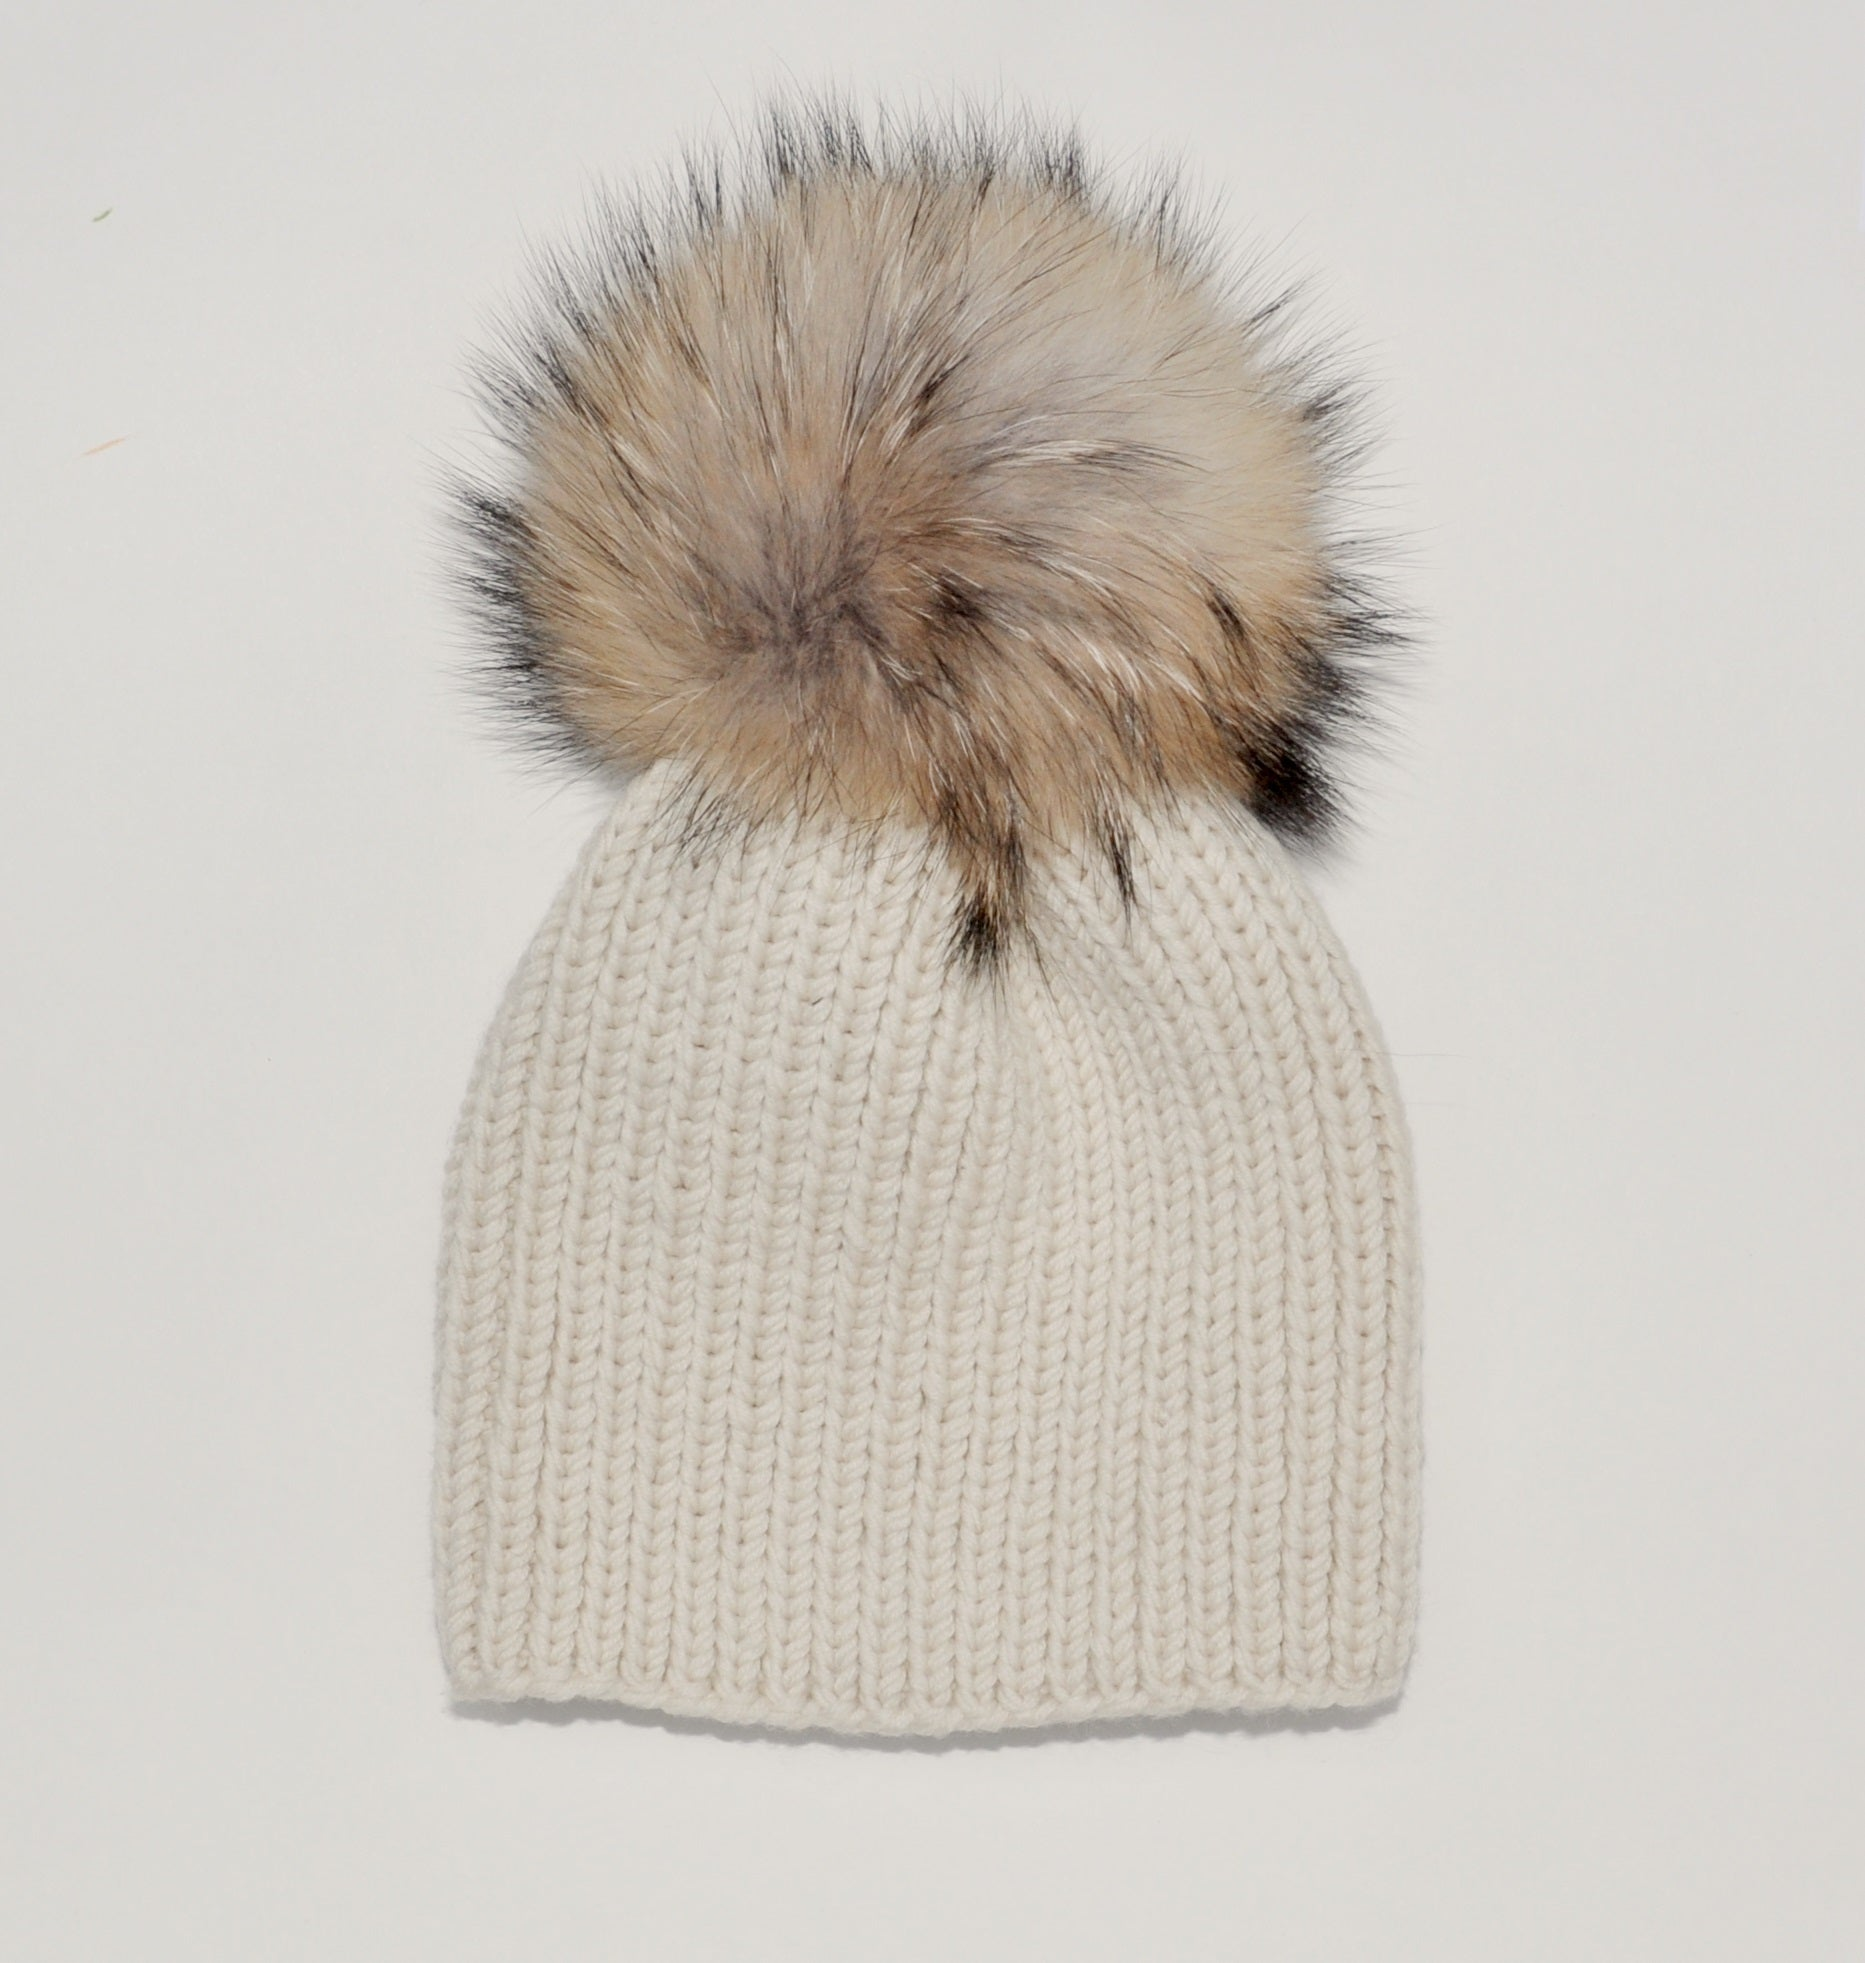 beanie hat ribbed handknitted in off-white extra fine merino wool with a large finn raccoon fur pompom matching